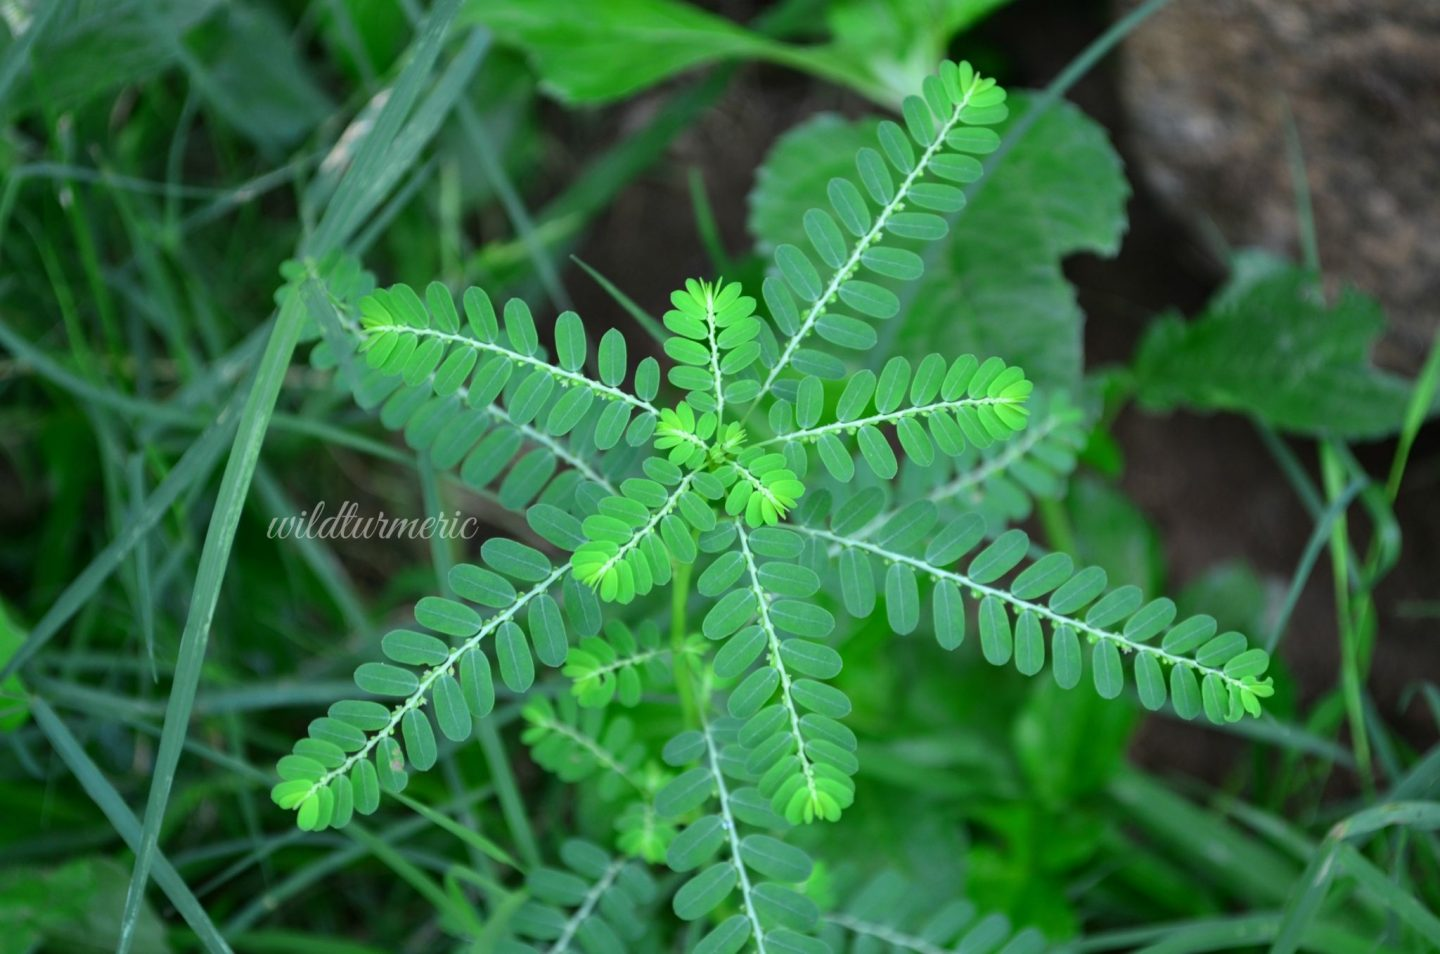 10 Top Medicinal Uses & Benefits Of Keelanelli | Keezhanelli For Hair, Skin & Health